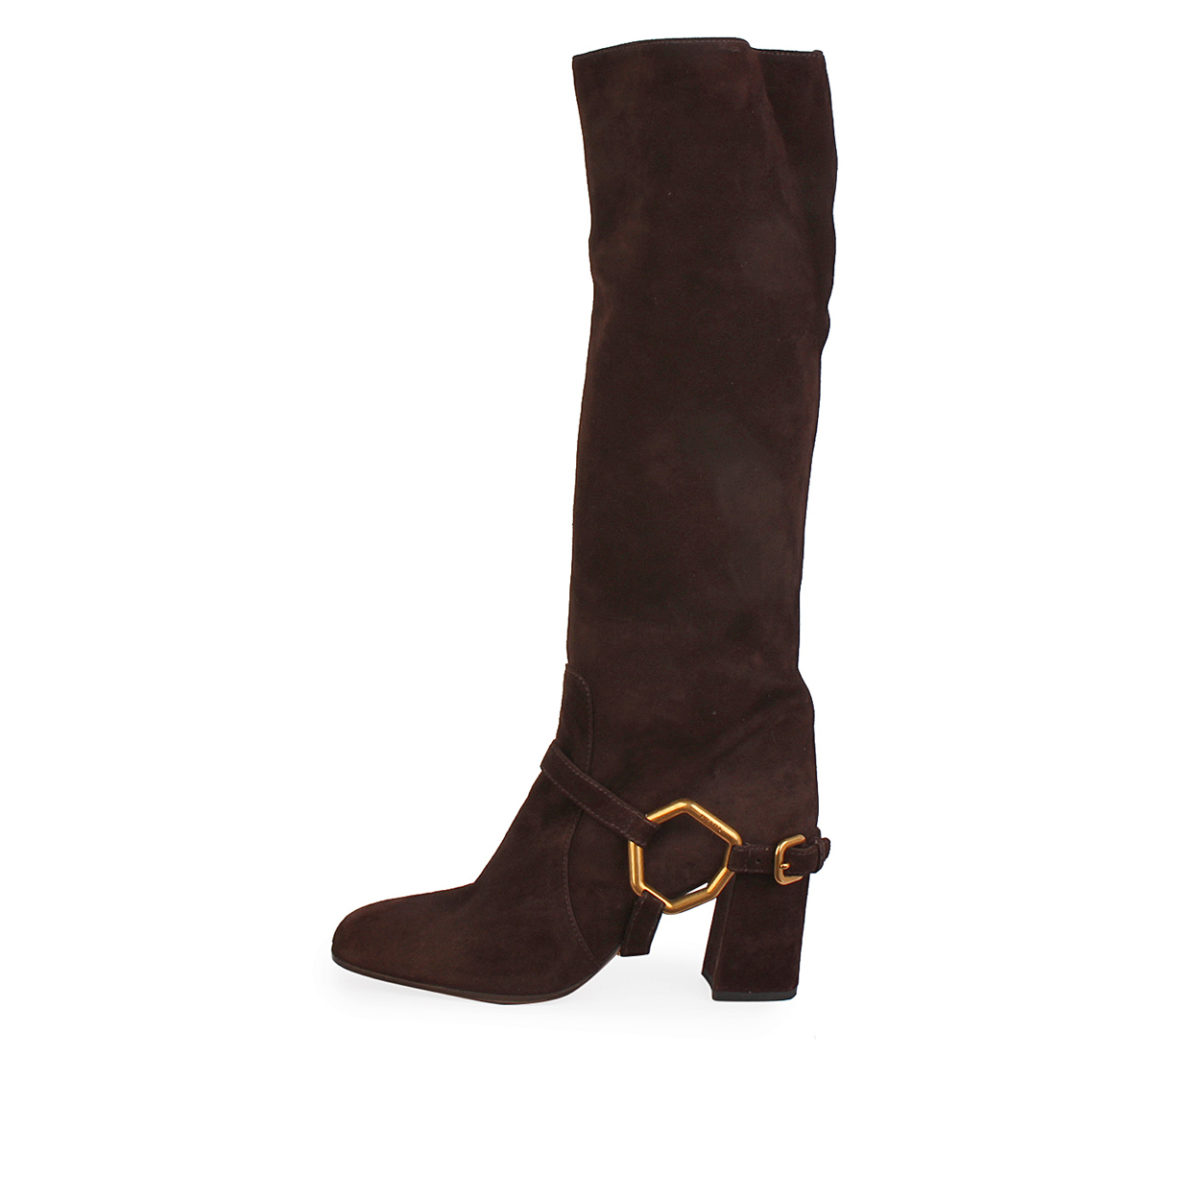 PRADA Suede Heeled Boots Brown - S  36 (3.5)   Luxity 90fb62e3b9f